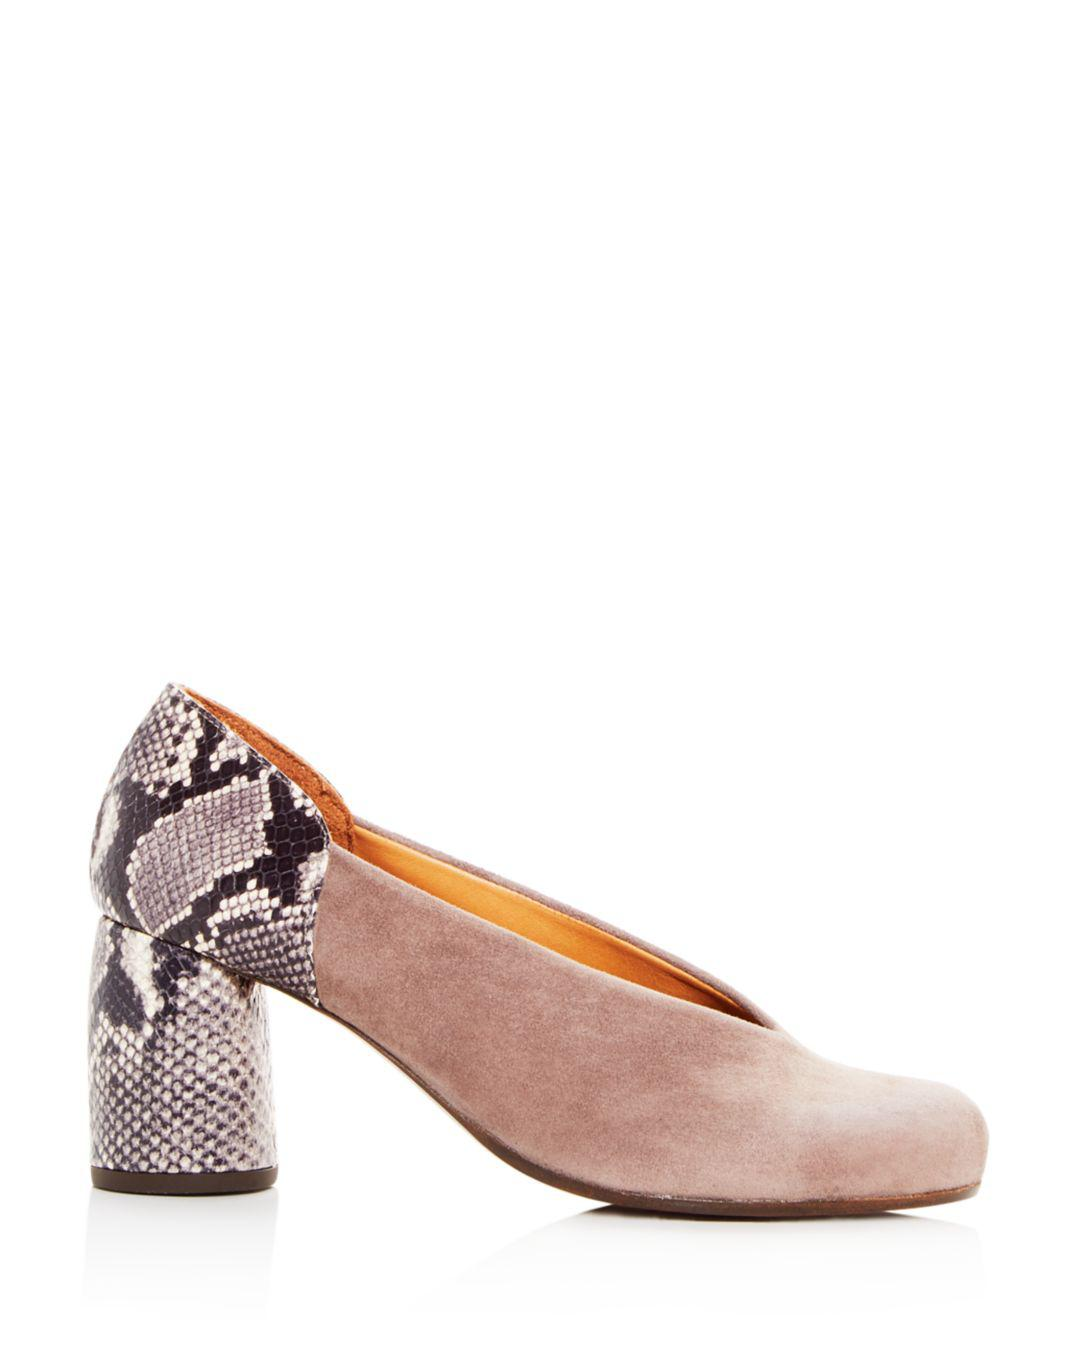 d281208b5e3 Chie Mihara Women s Ante Amazon Suede   Embossed Leather Block-heel Pumps -  Lyst